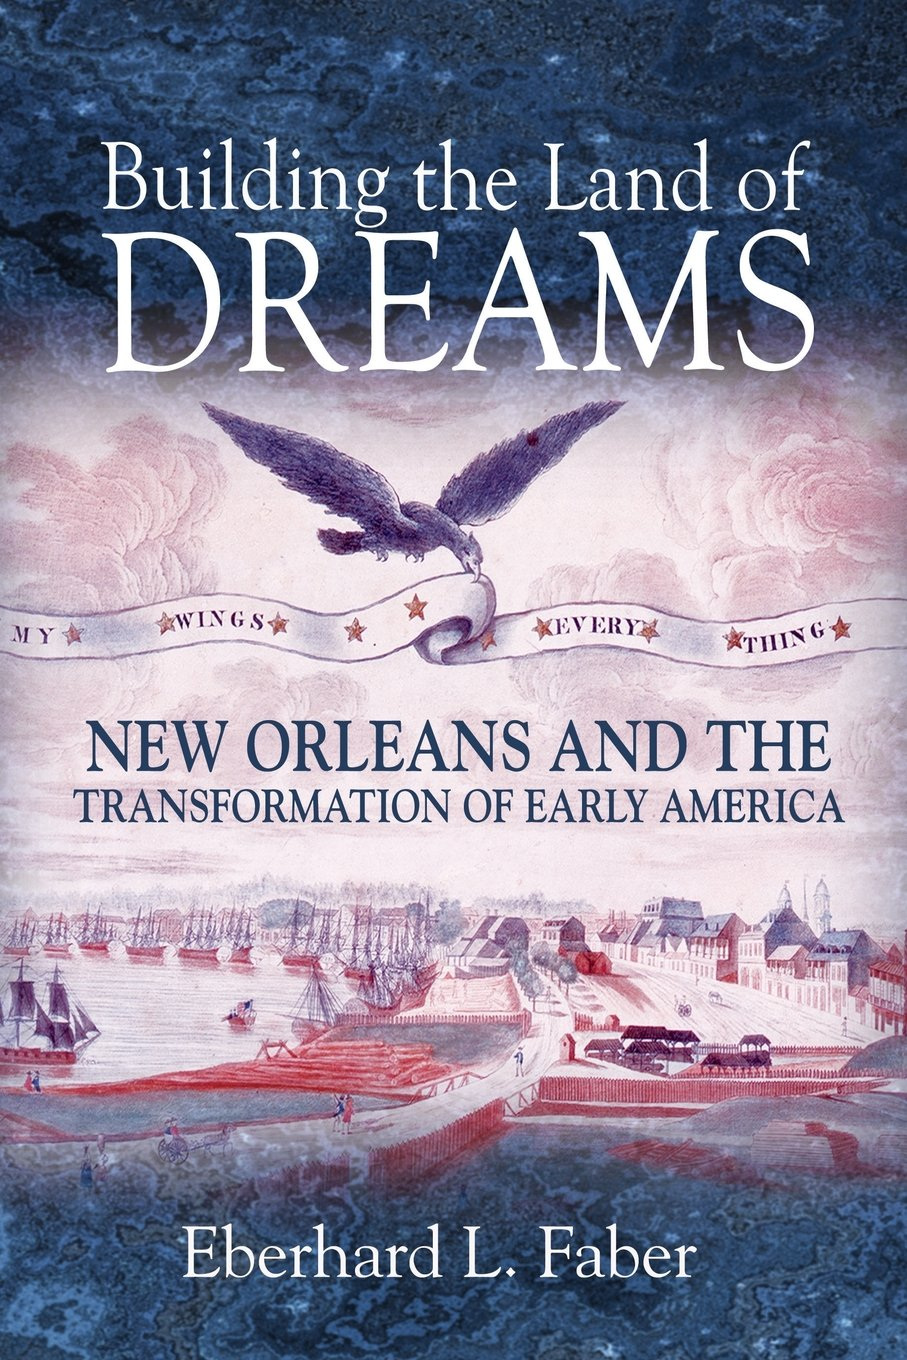 Download Building the Land of Dreams: New Orleans and the Transformation of Early America PDF